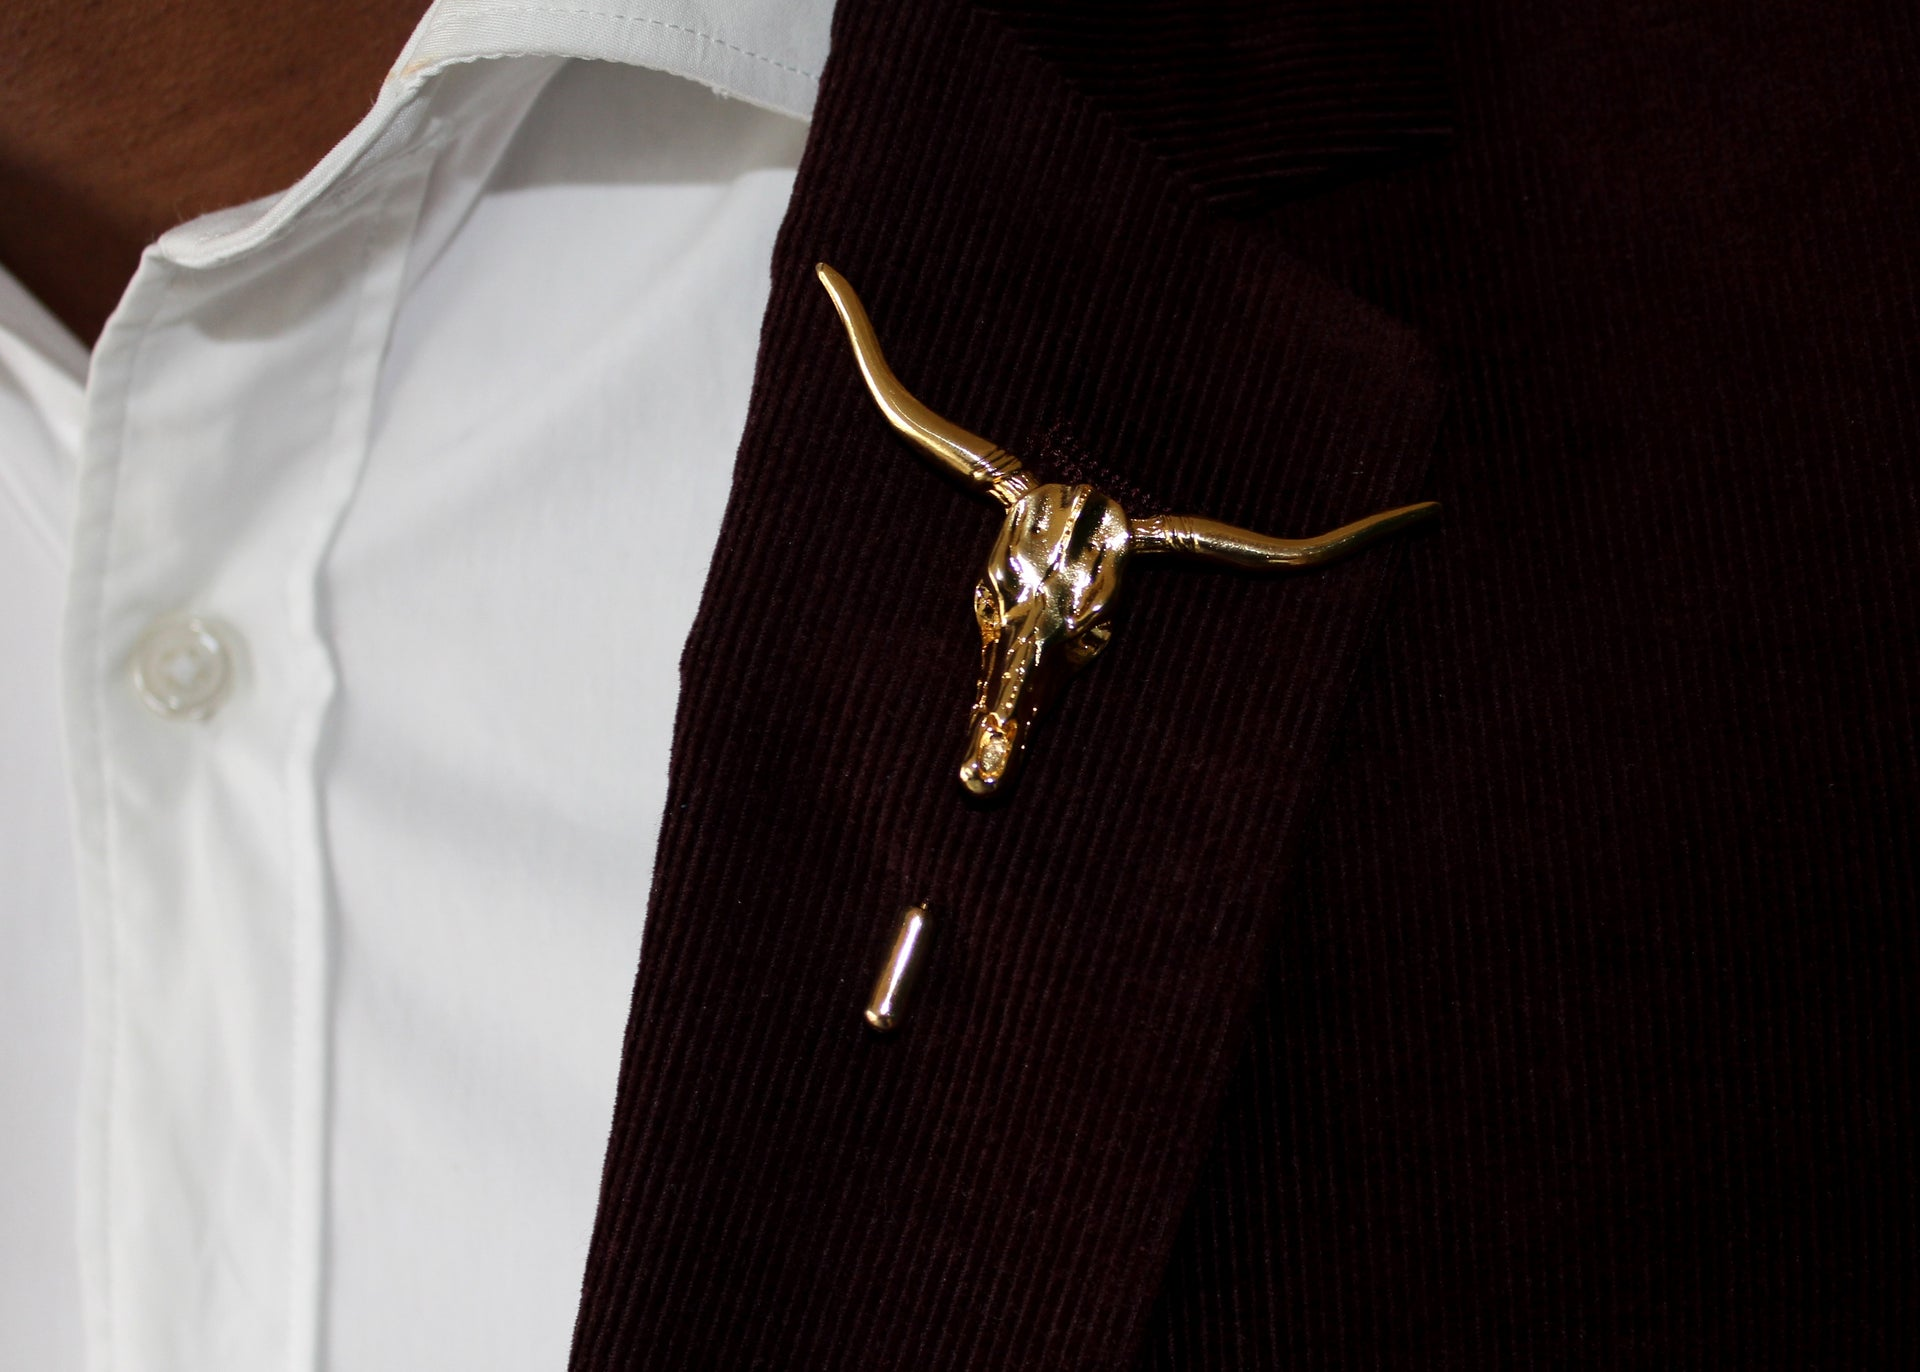 Longhorn Lapel Pin - 18K Gold